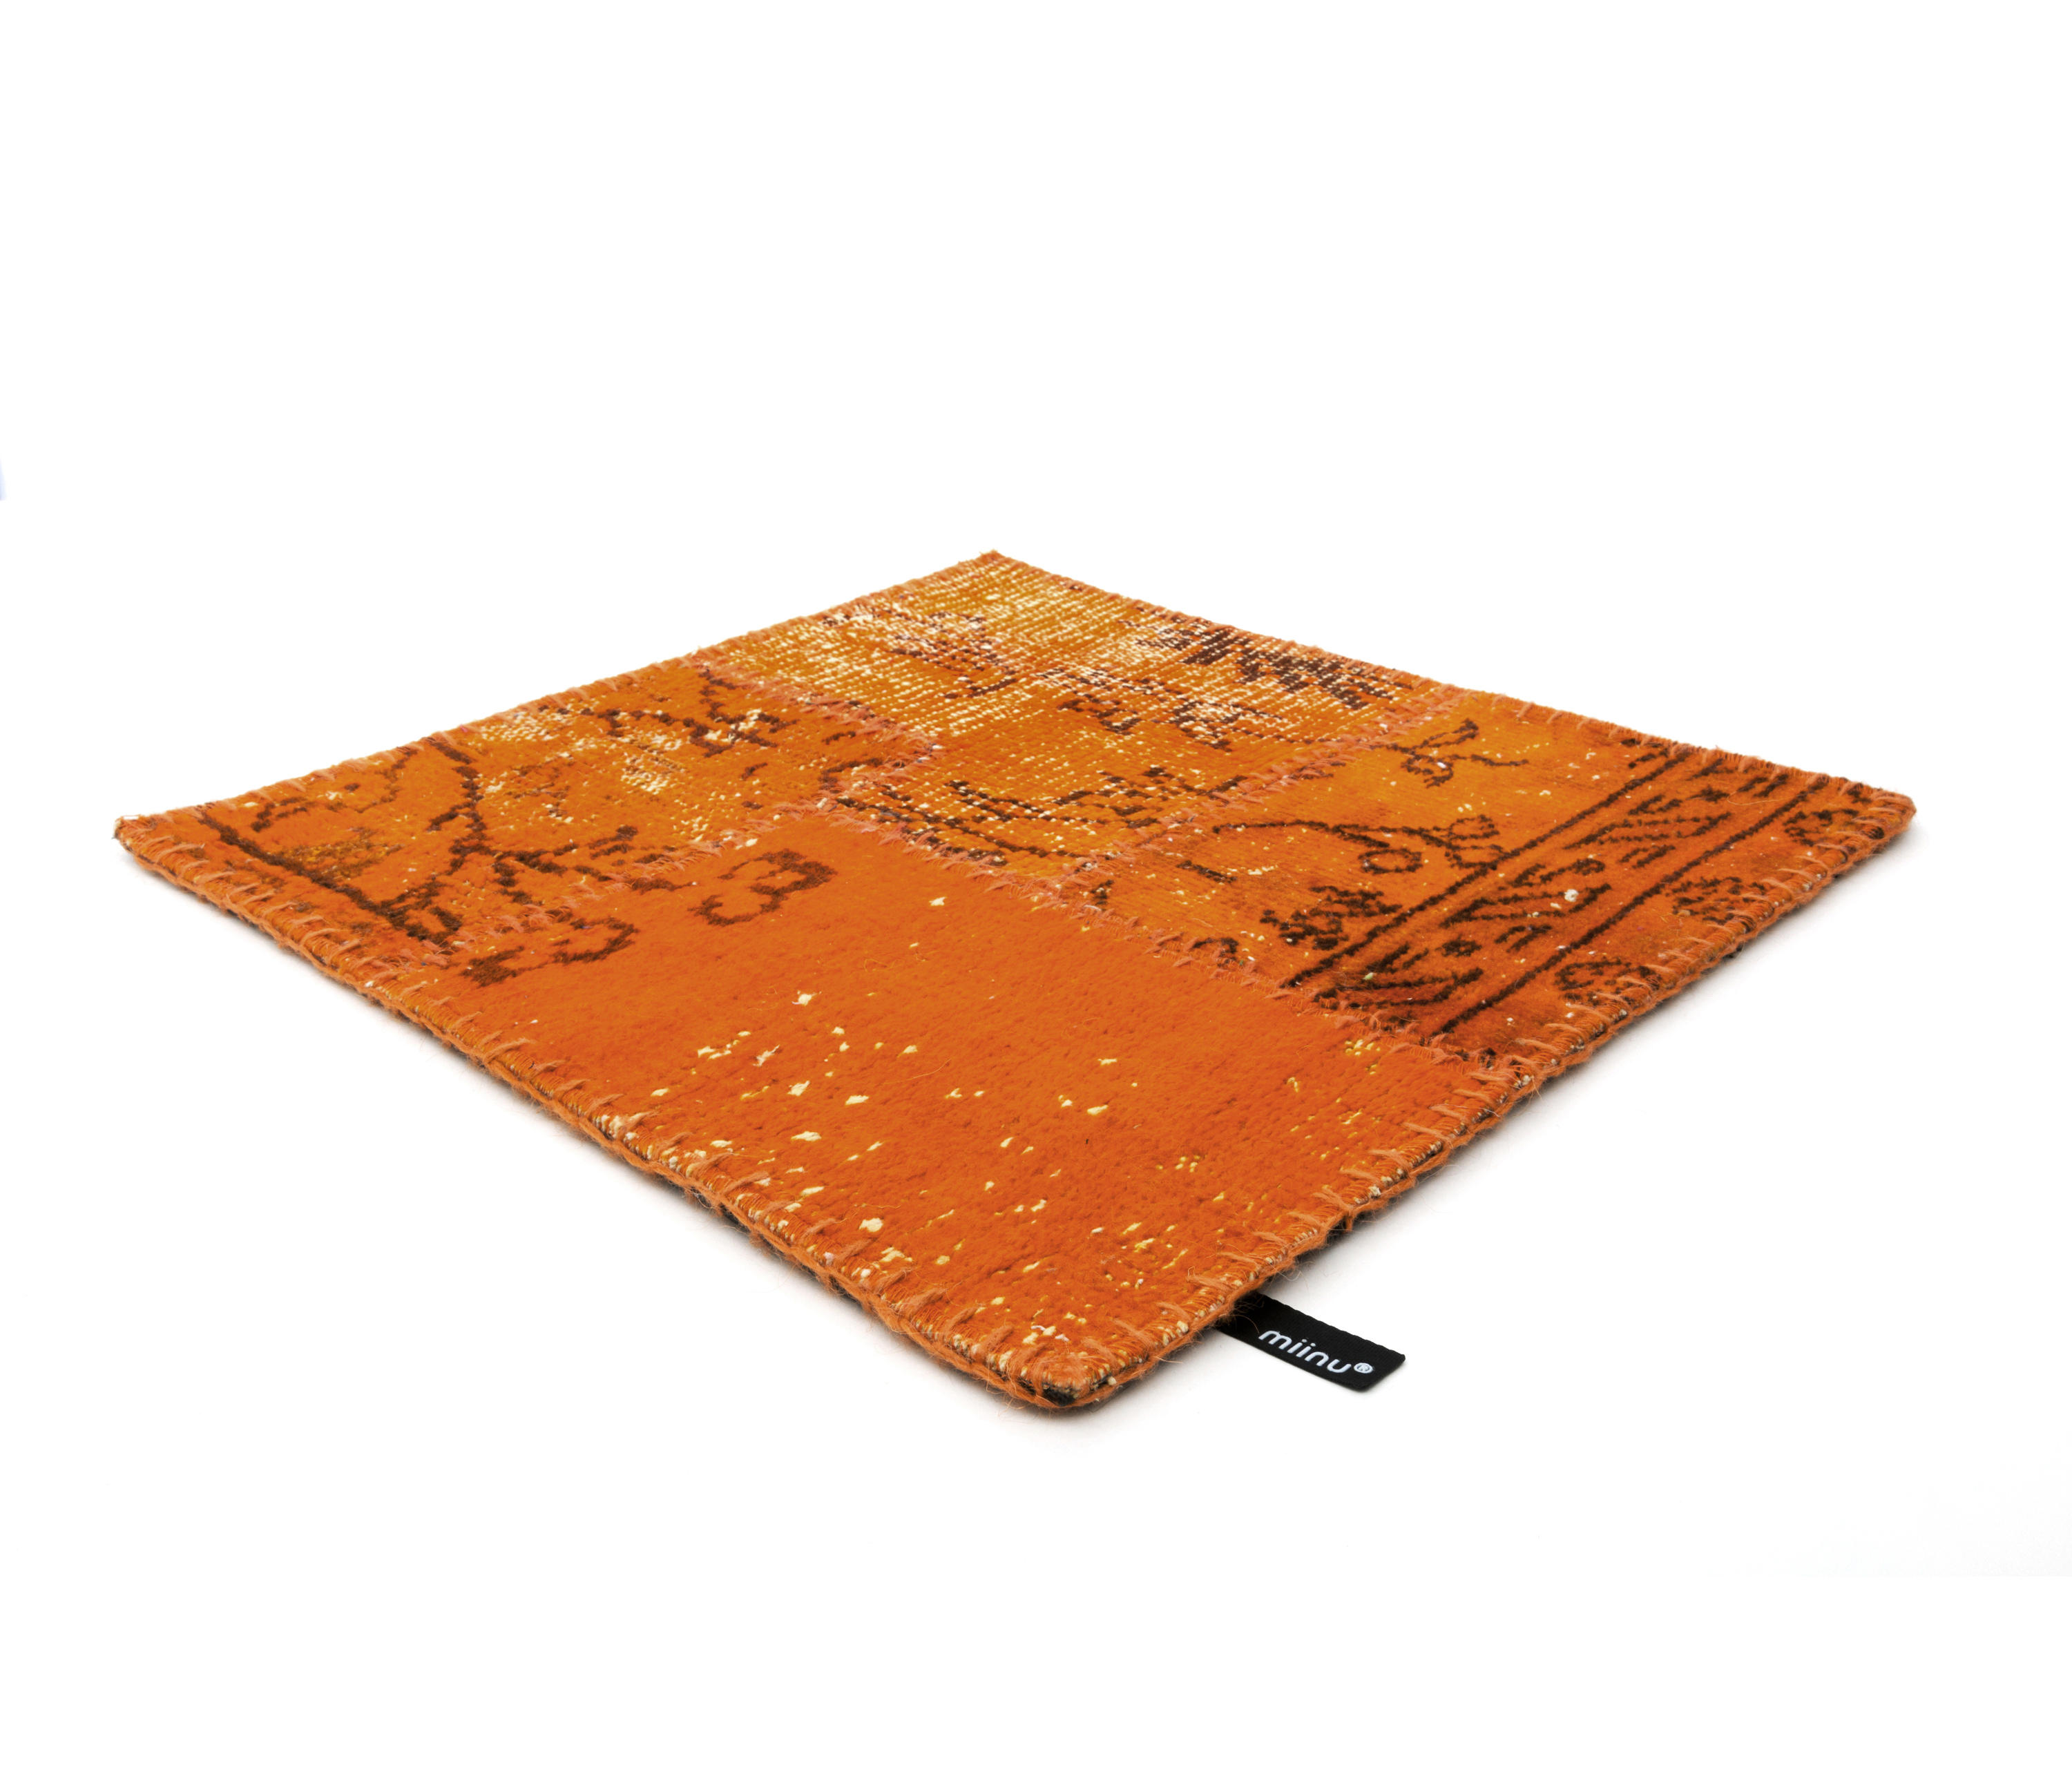 industrial blazing orange rugs designer rugs from. Black Bedroom Furniture Sets. Home Design Ideas